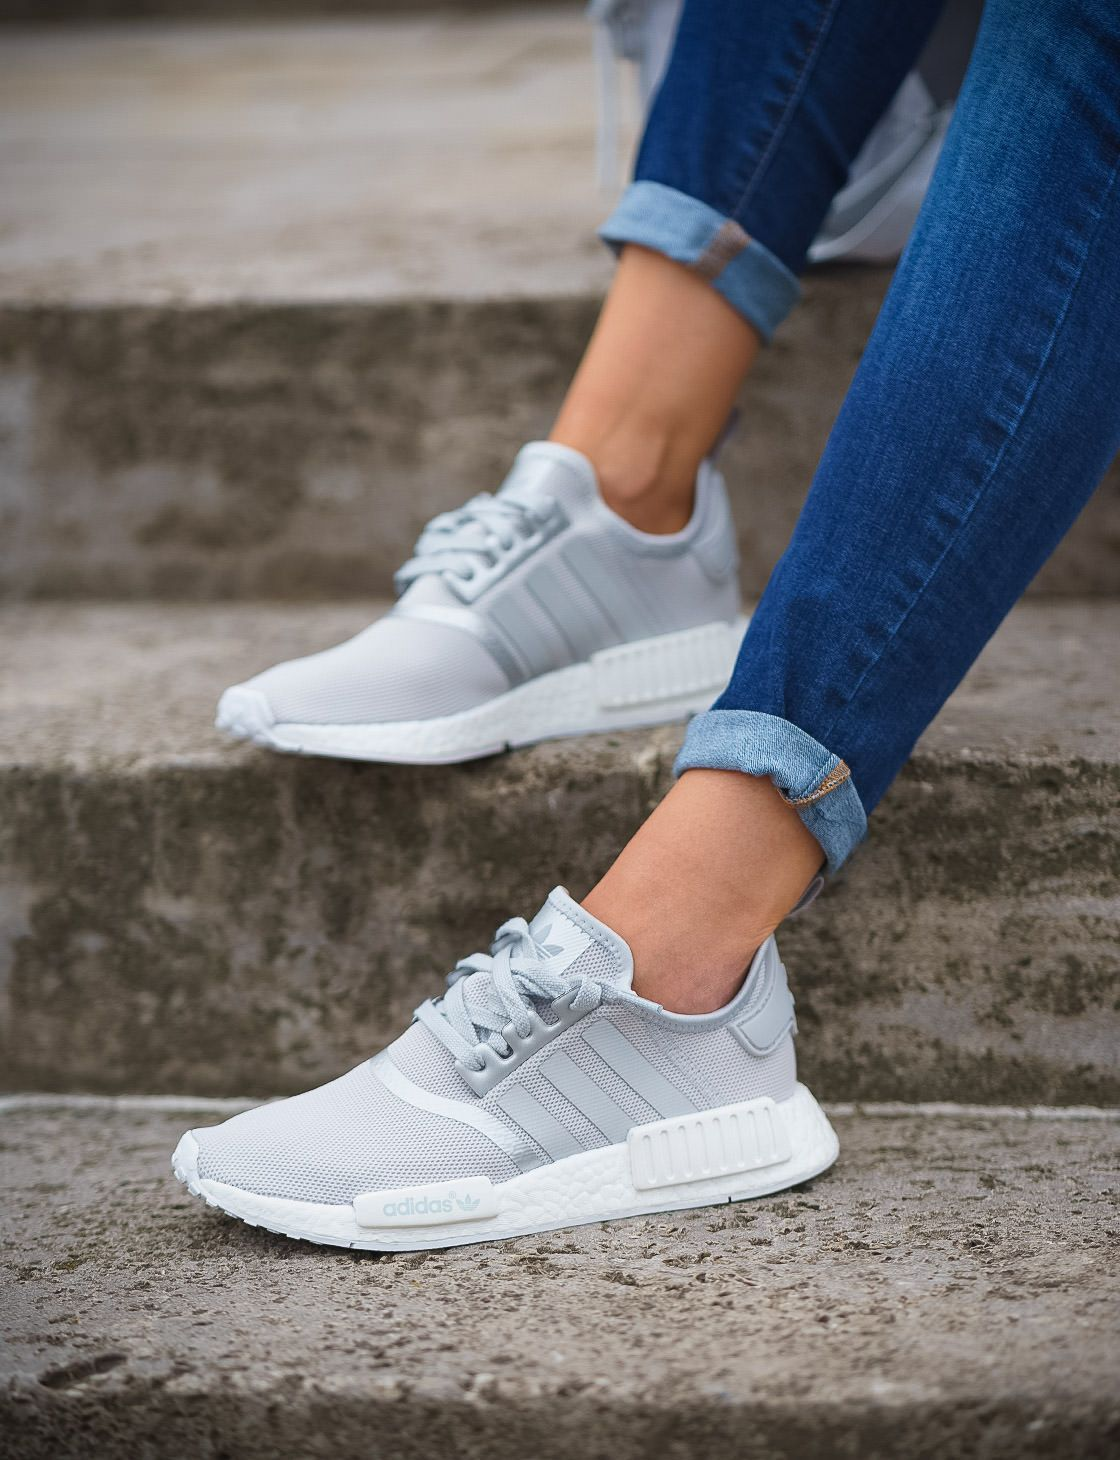 Alexander Wang Adidas Rumored To Be Working On A Boost Sneaker Que Es Elliee When Your Spying On A G With Images Adidas Shoes Women Cute Sneakers Adidas Women